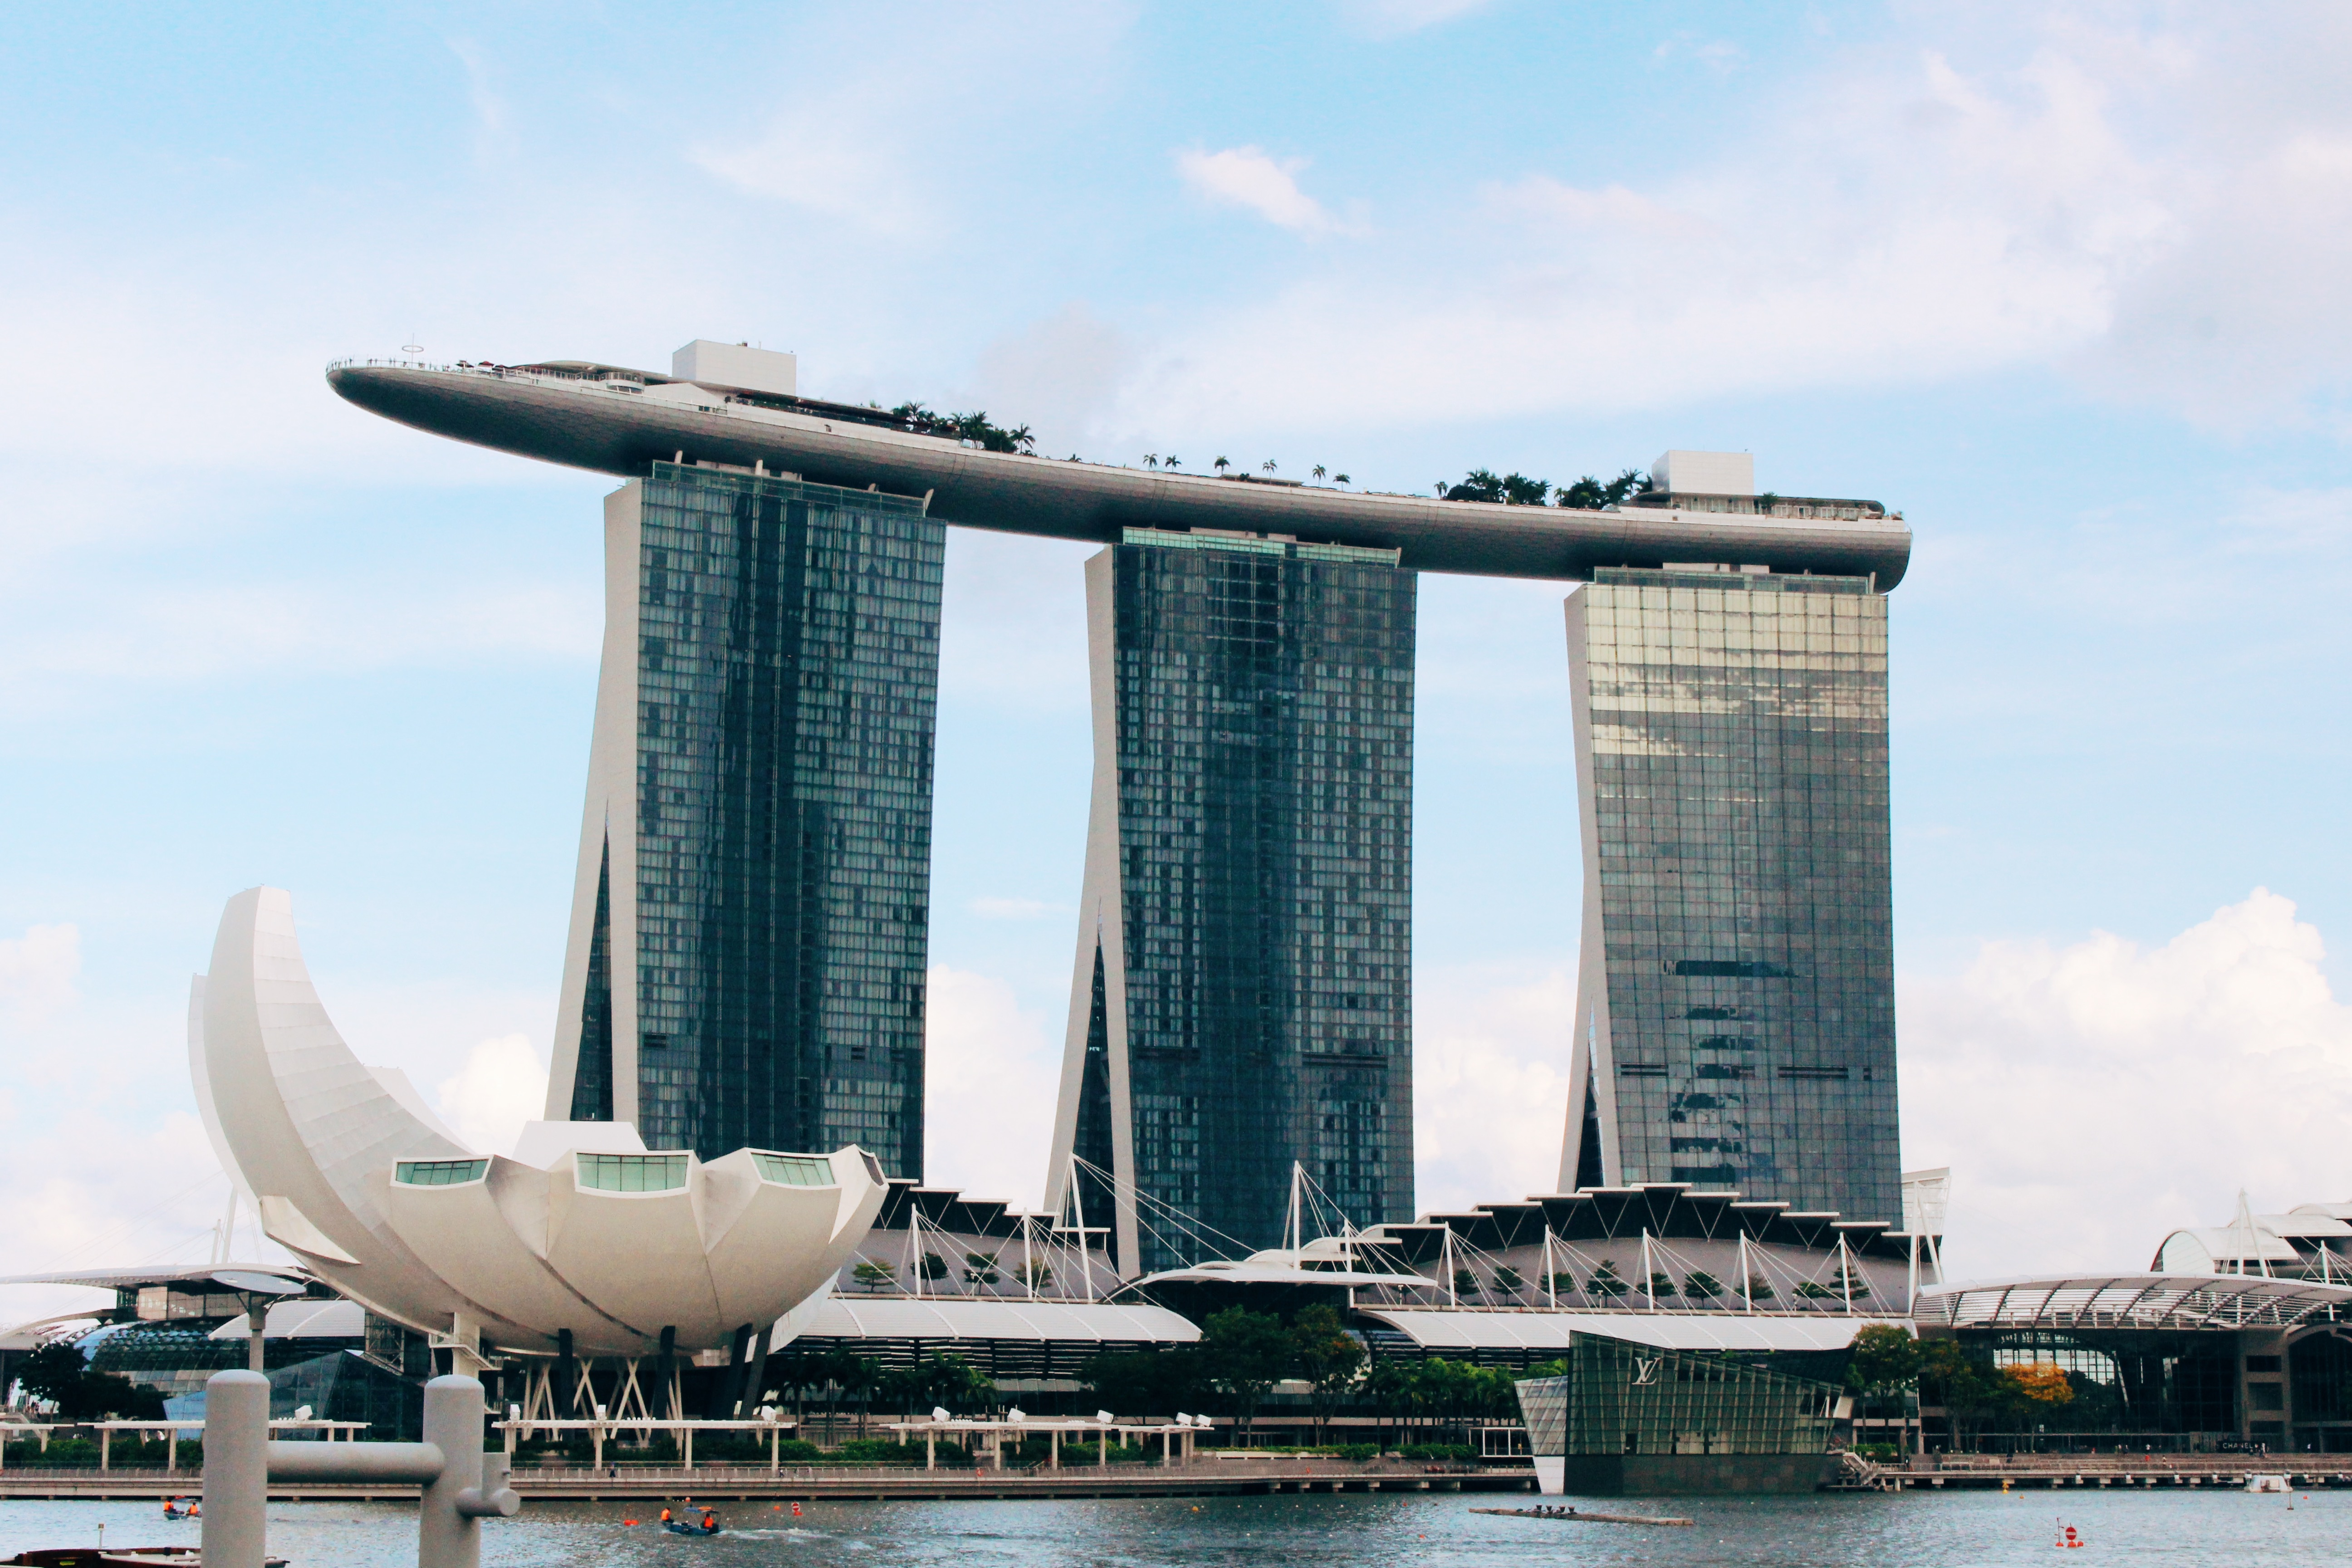 In 2018, for the fourth year in a row, India contributed more than a million visitor arrivals to Singapore